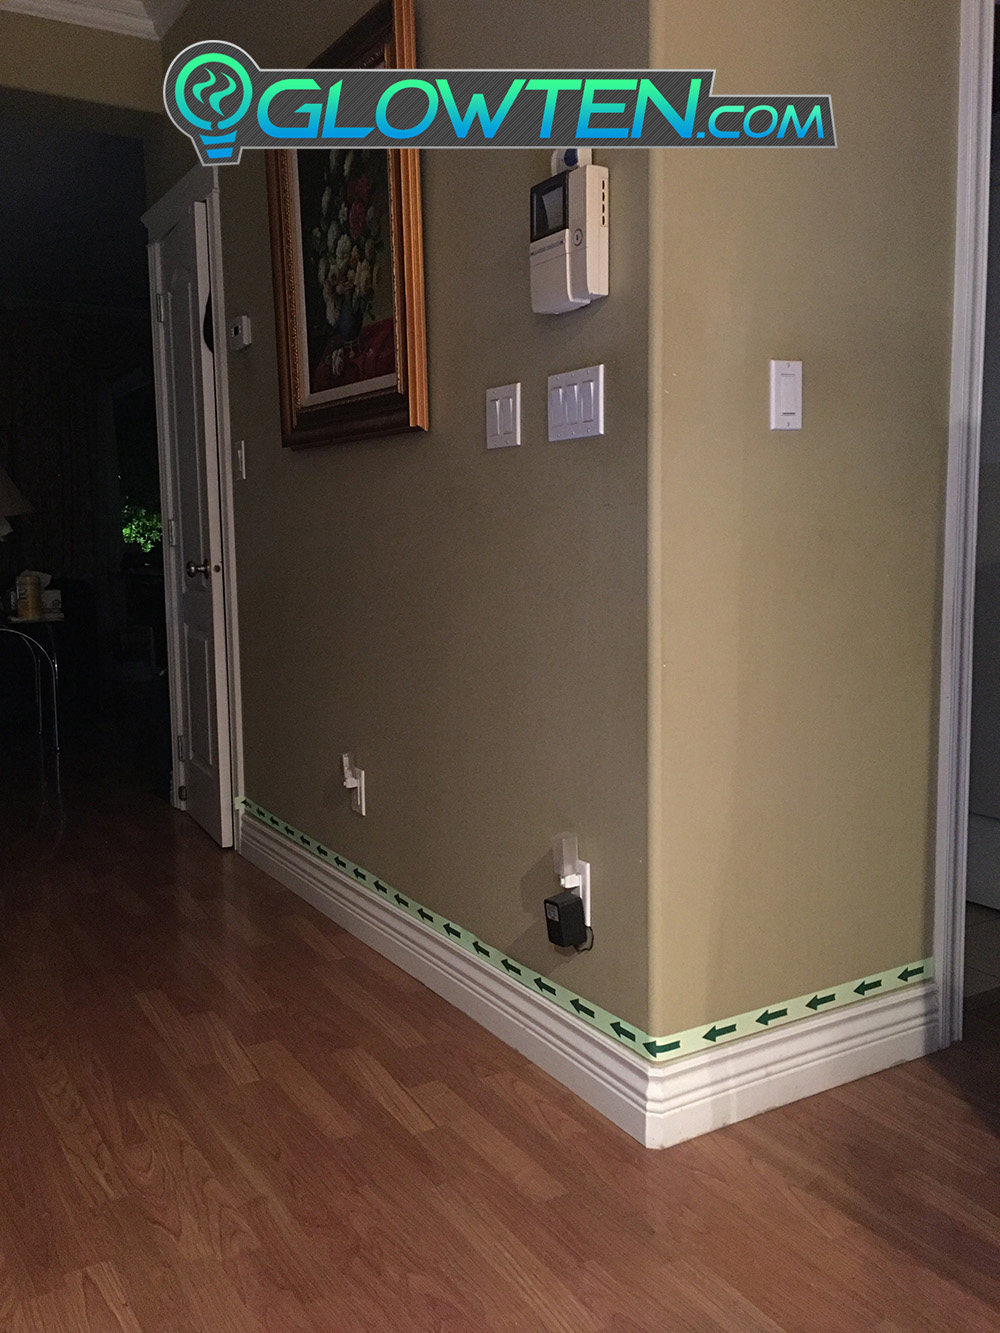 GLOWTEN.com - ARROW POINT TAPE Glow in the Dark Green Single Direction Sign All Purpose Tape Roll Lite Green indoors hallways stairs glow in the dark marker pic 4